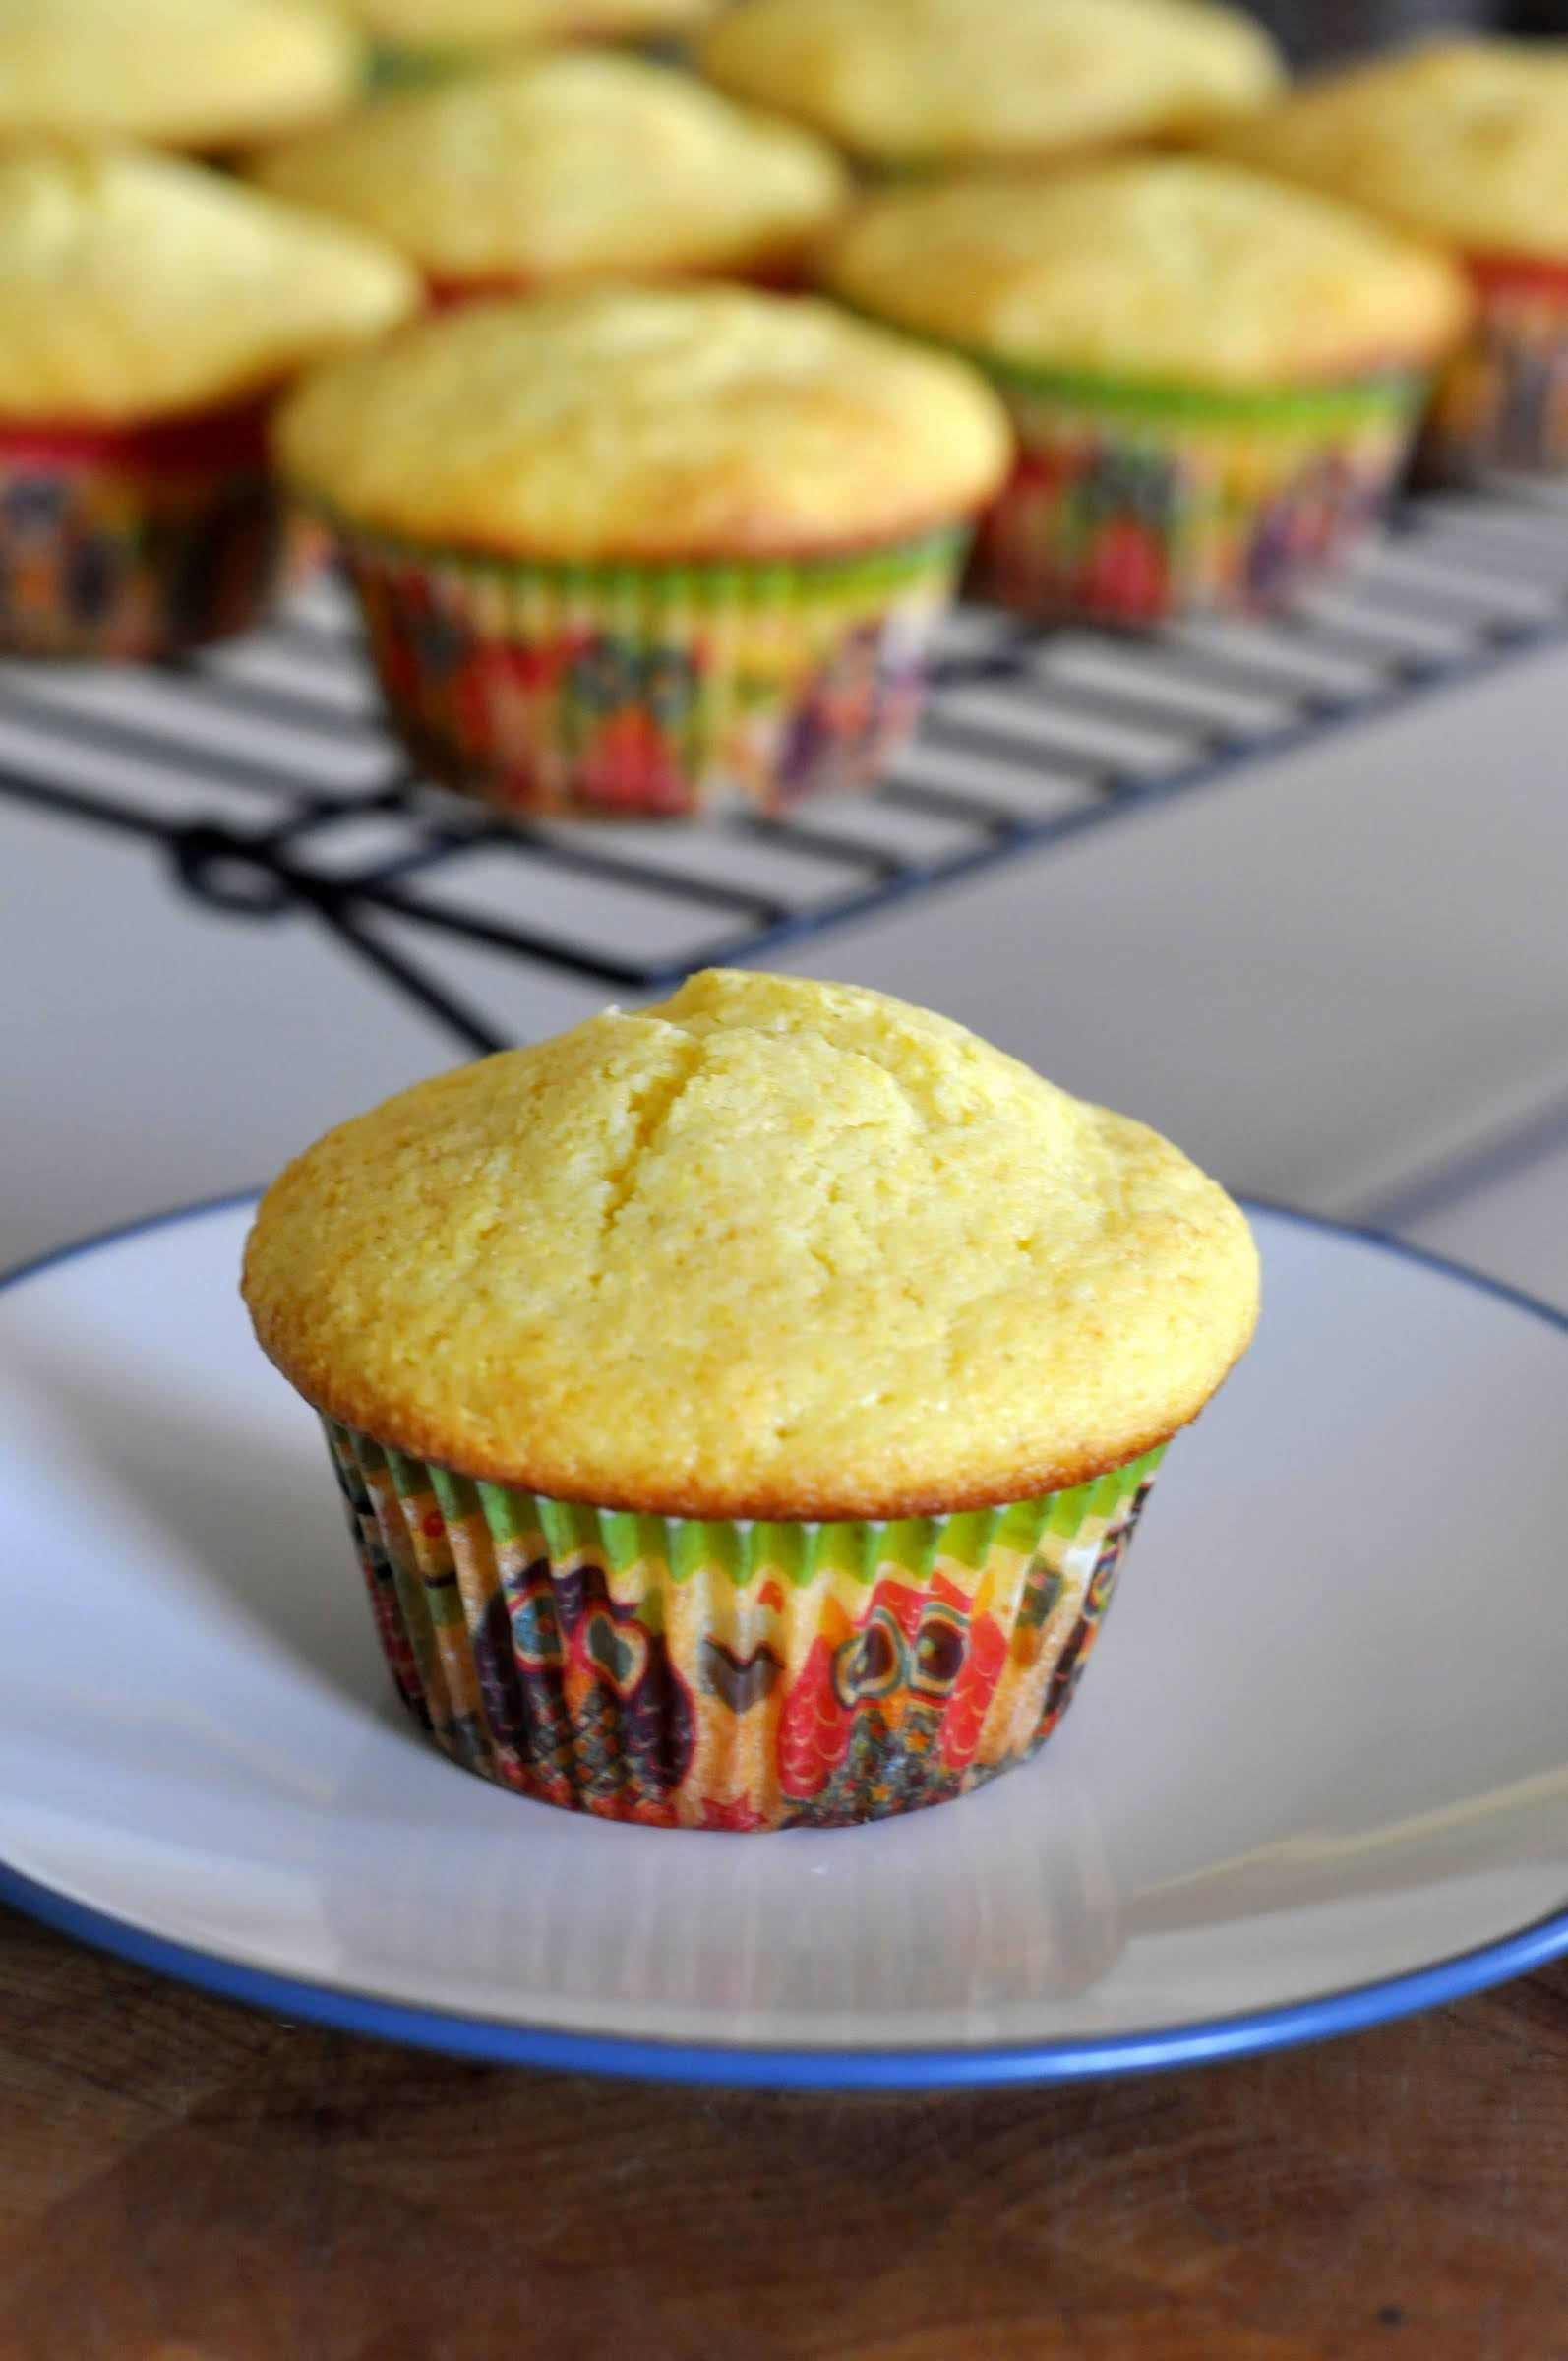 A single honey cornbread muffin sitting on a plate with a cake stand of additional muffins behind it.